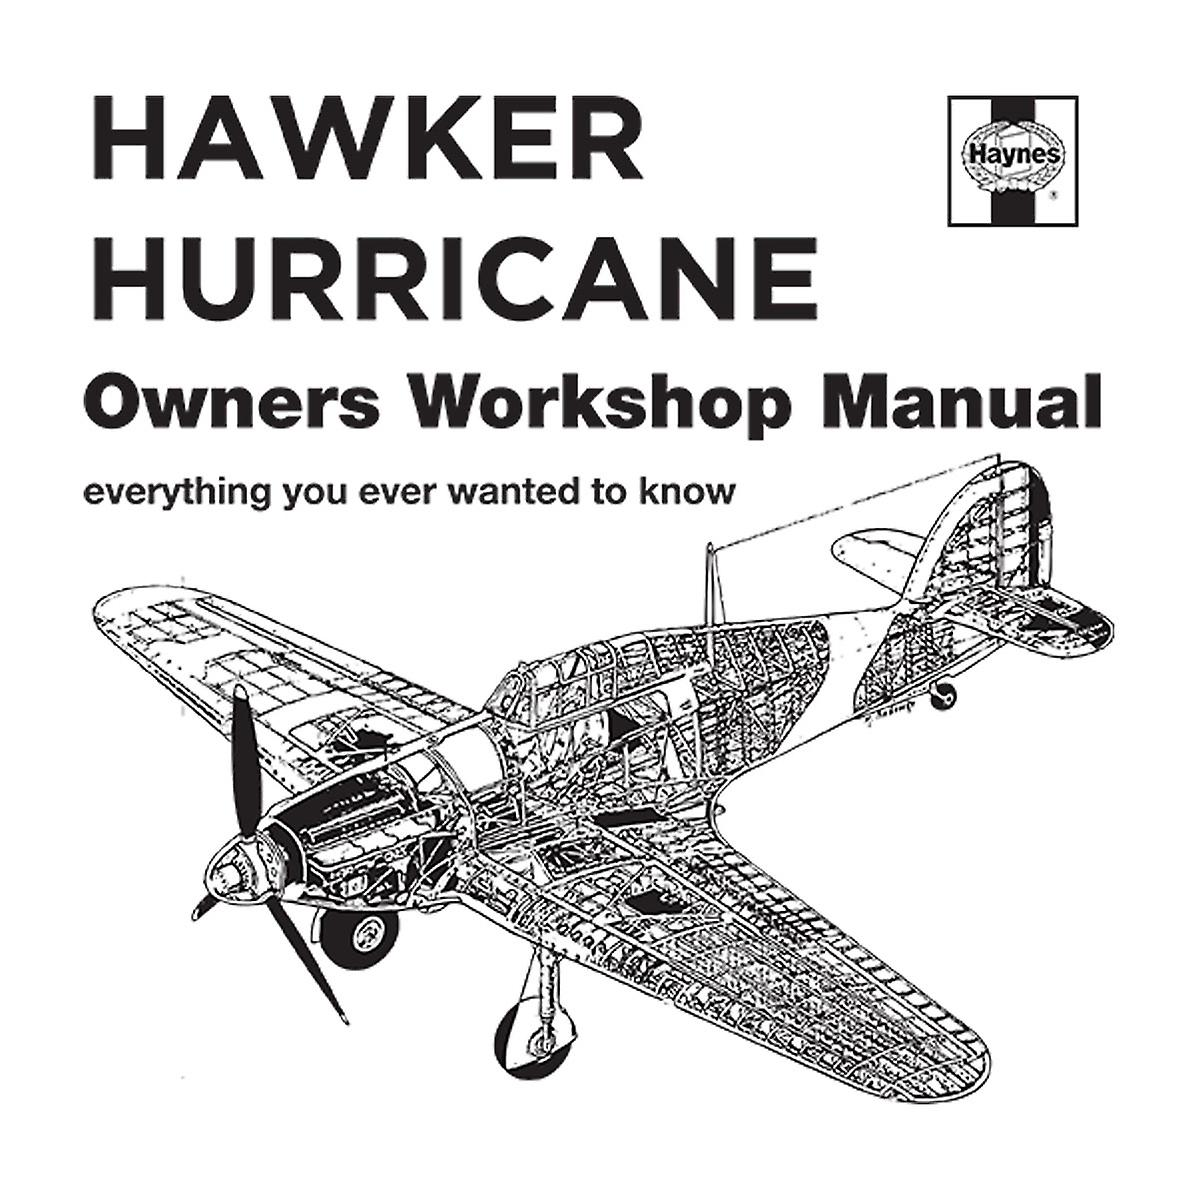 Haynes Owners Workshop Manual Hawker Hurricane VW Women's